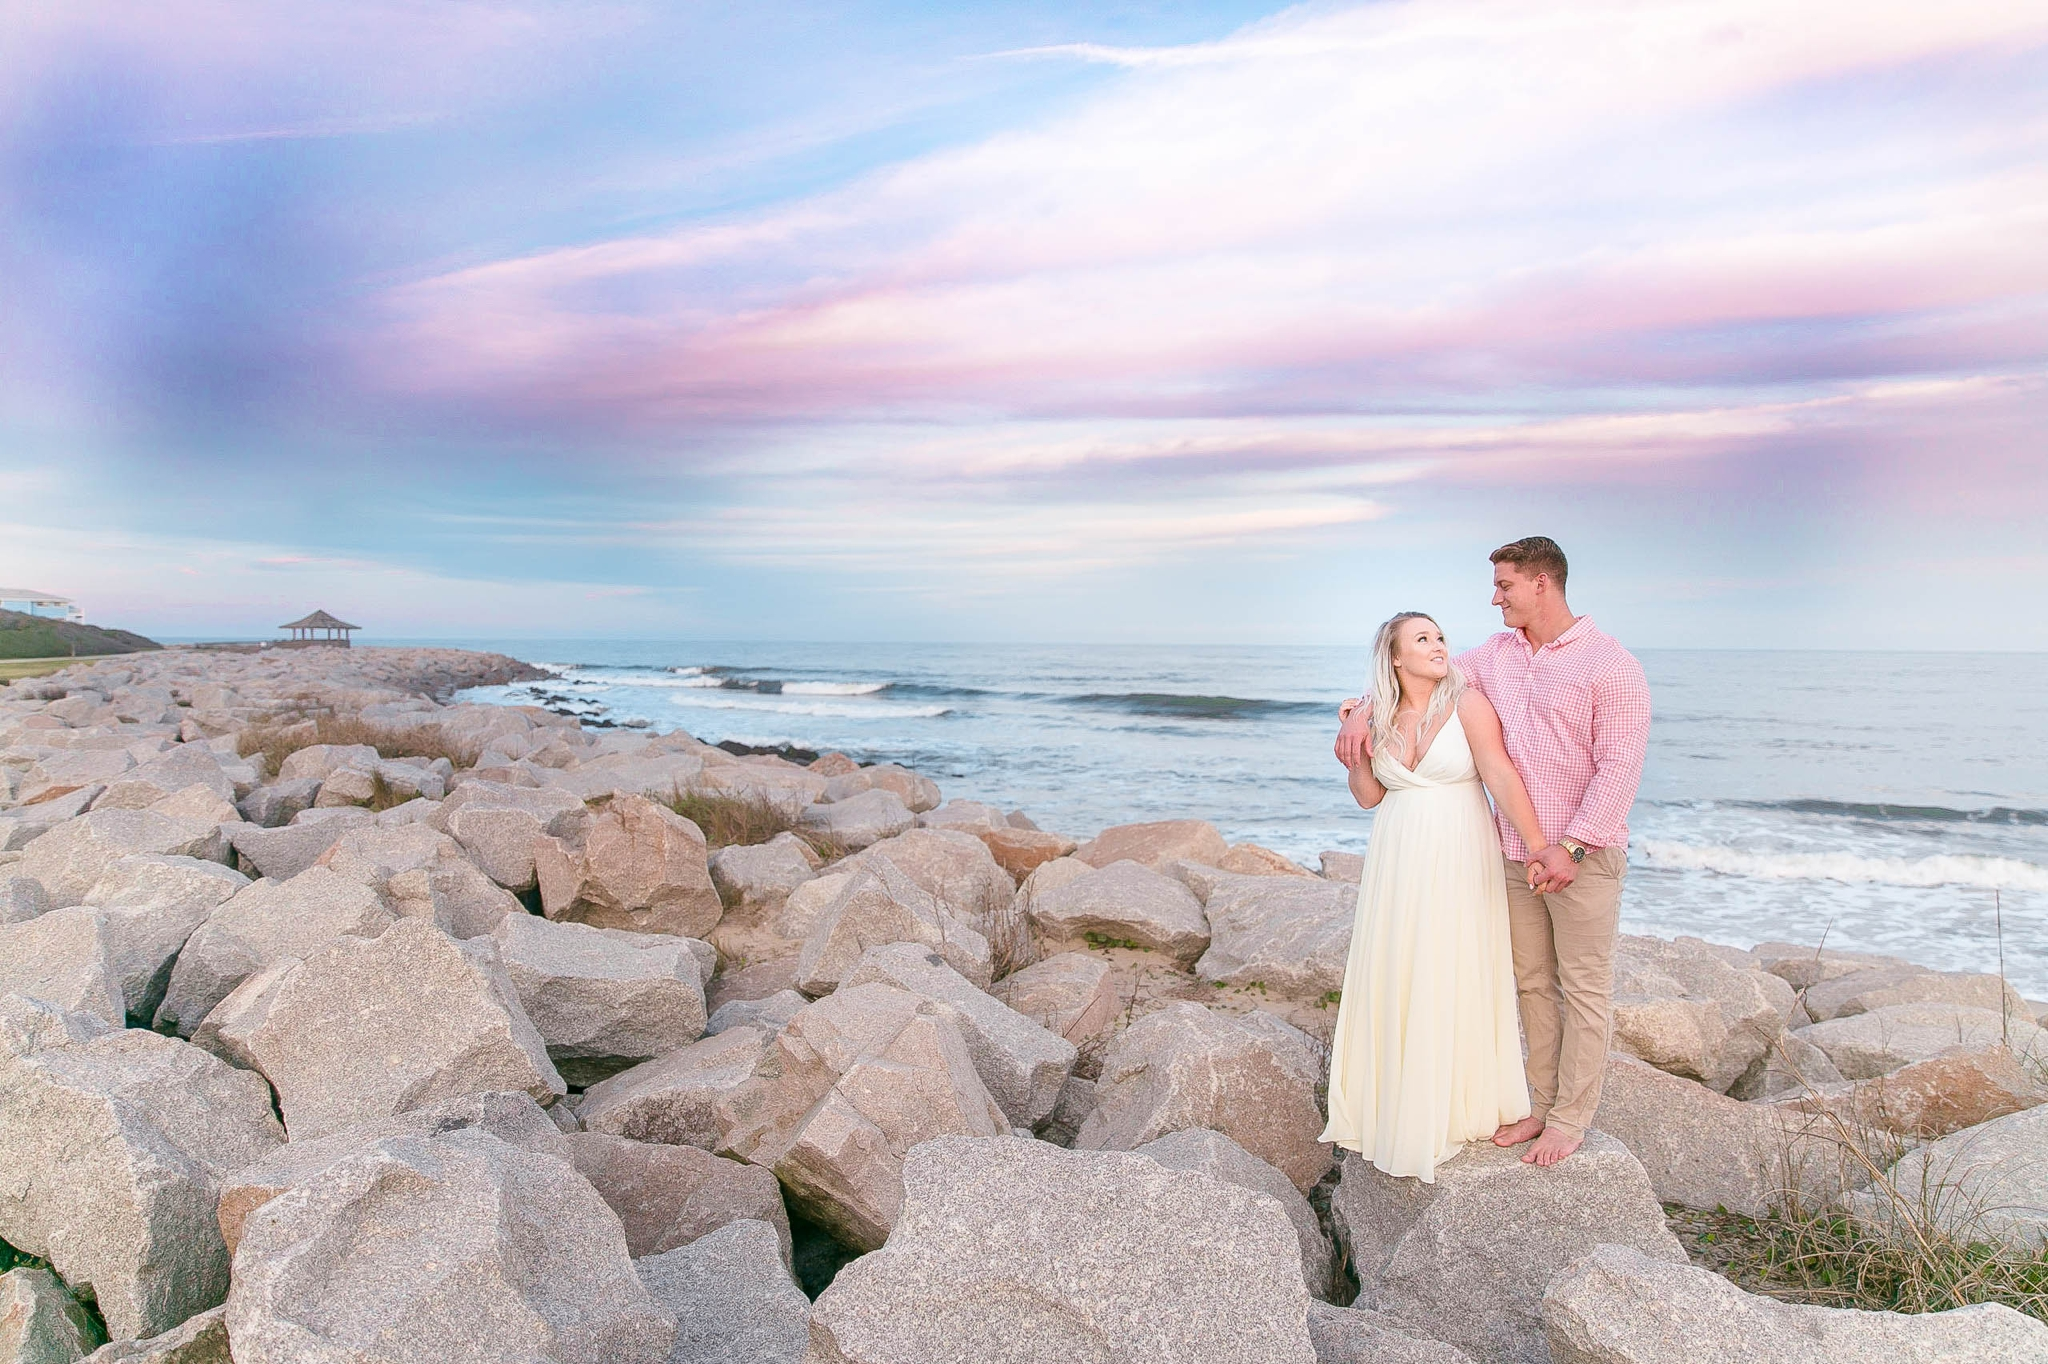 Engagement Photography Session at the beach on top of rocks with a cotton candy sky in the background - couple is standing up - girl is wearing a white flowy maxi dress from lulus - Honolulu Oahu Hawaii Wedding Photographer - Johanna Dye